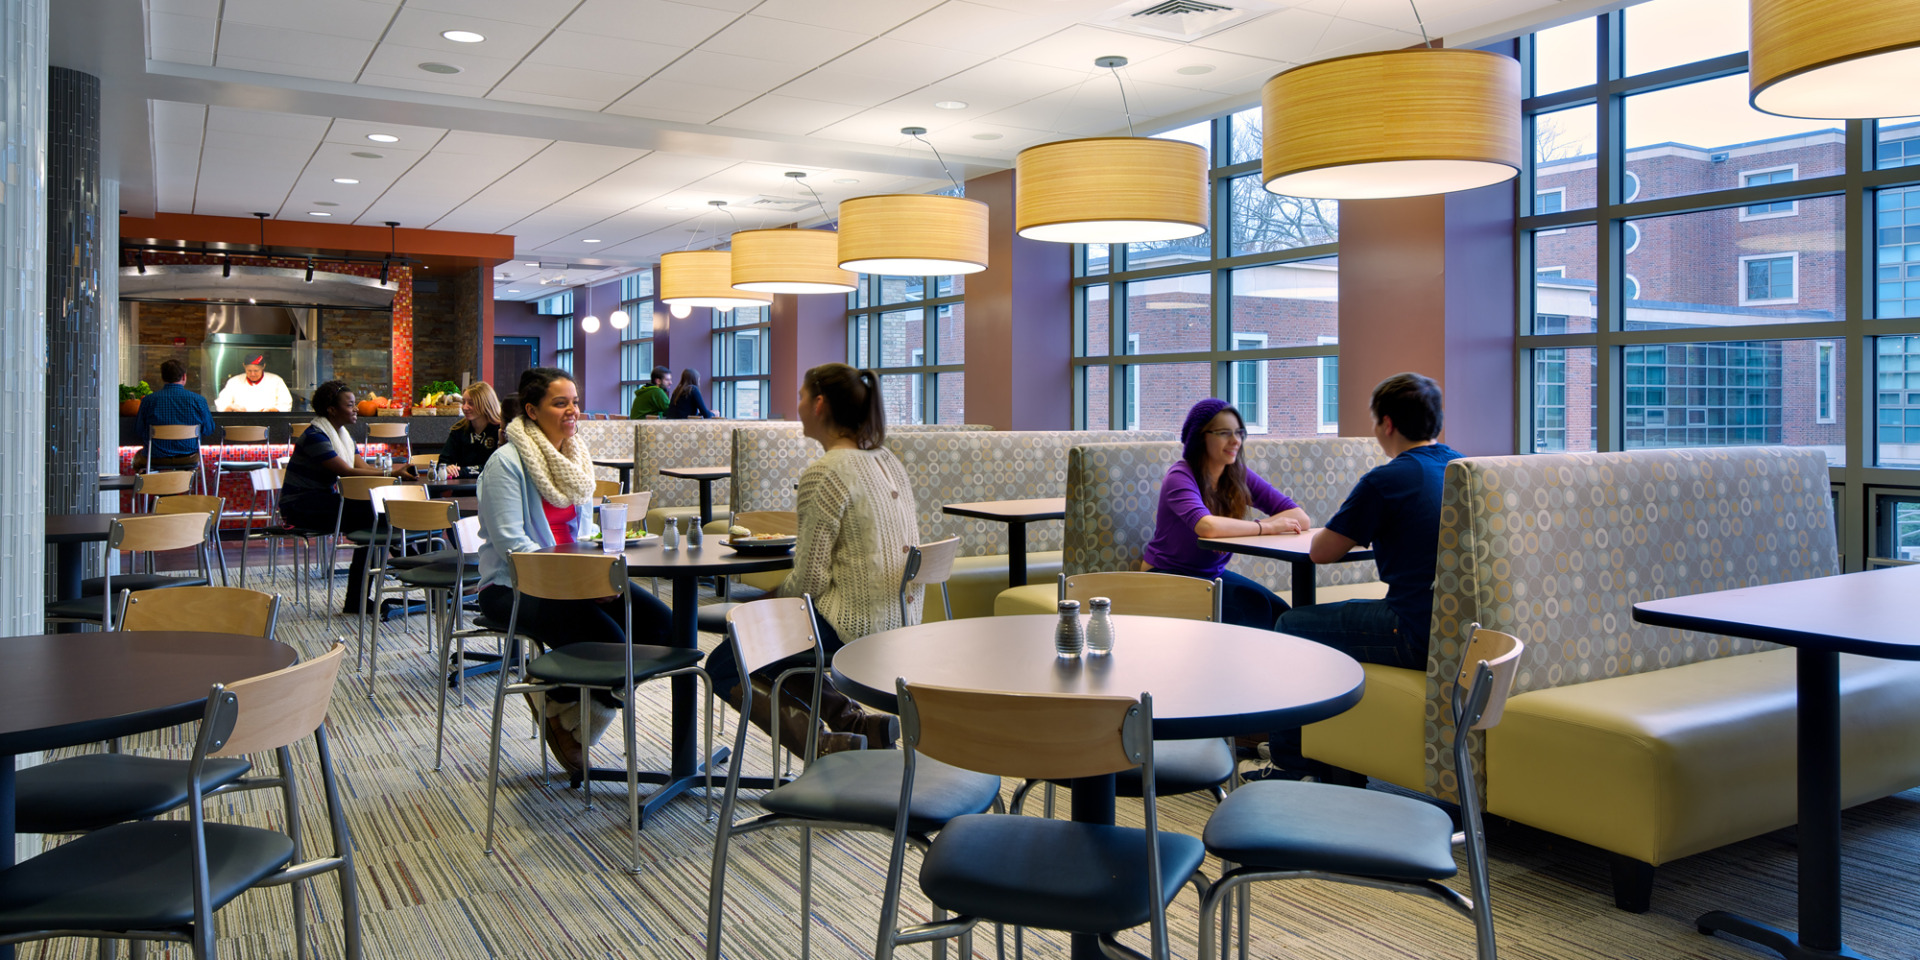 Here are students eating in a campus dining hall.